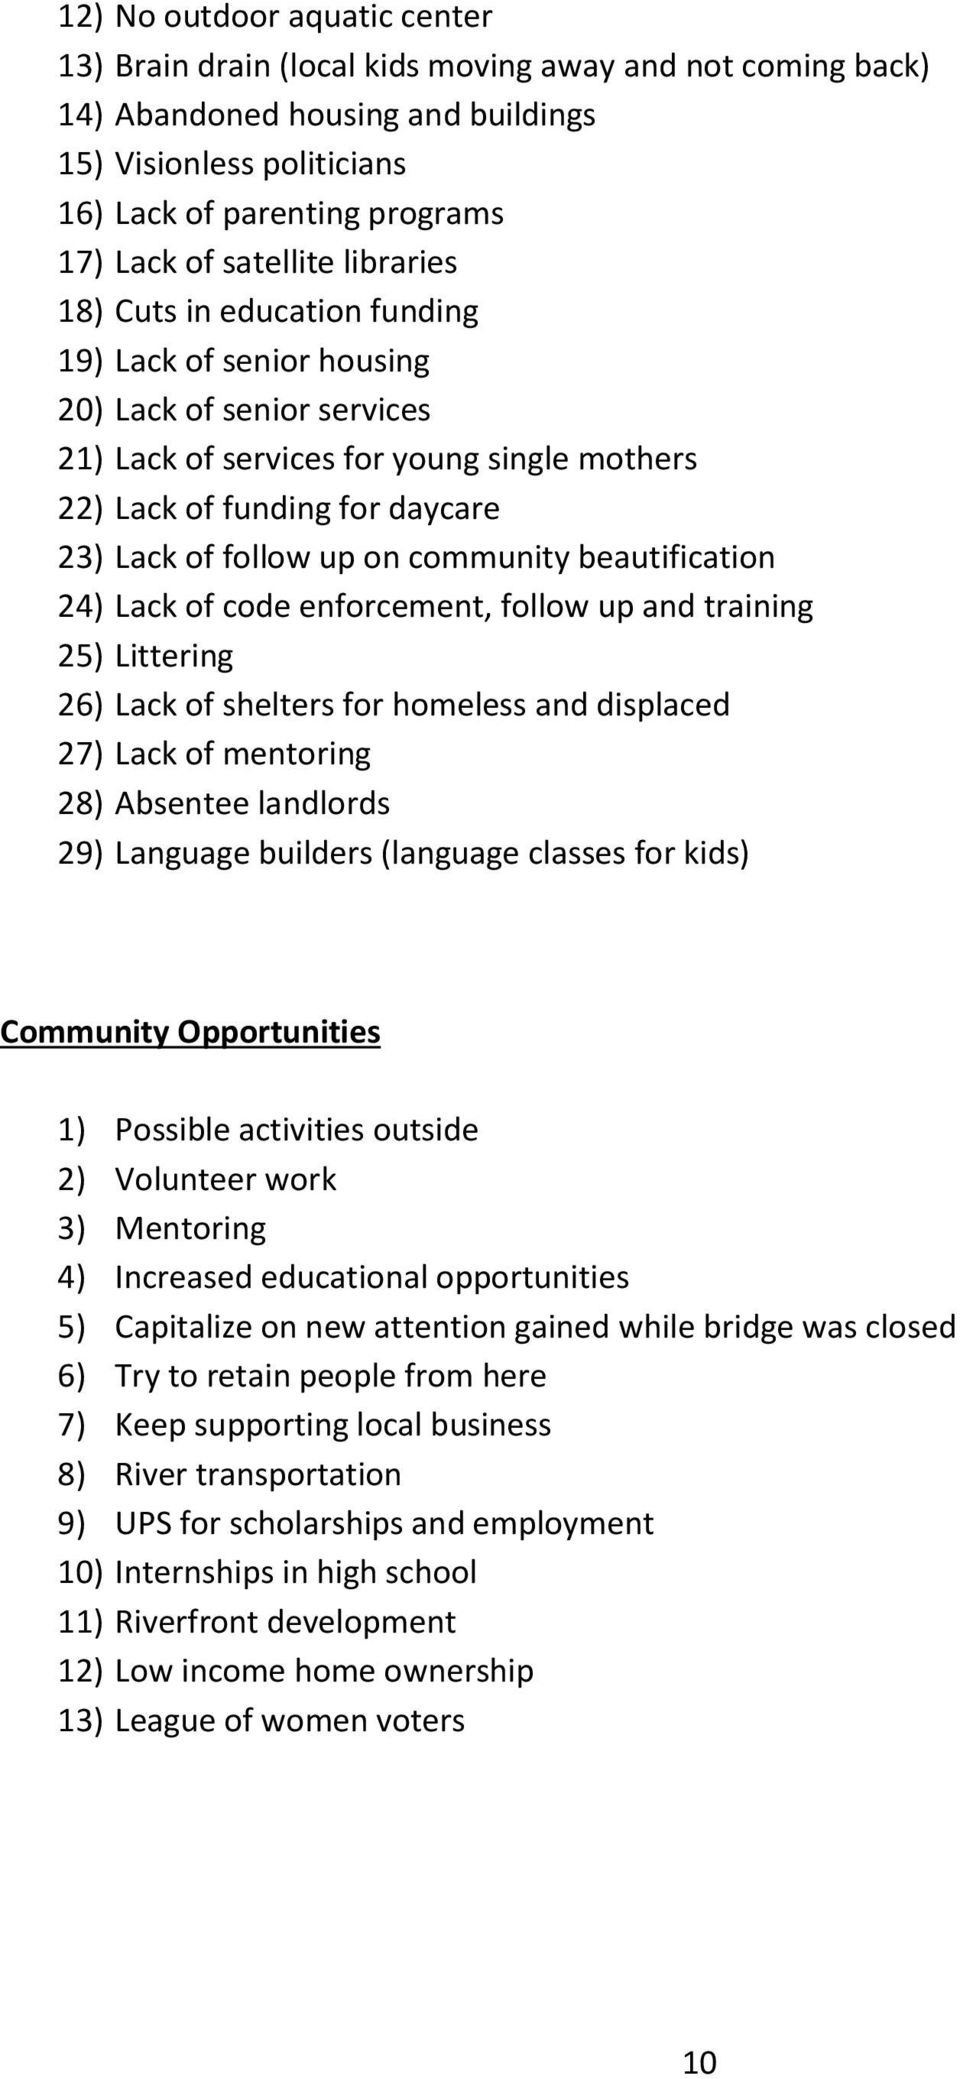 follow up on community beautification 24) Lack of code enforcement, follow up and training 25) Littering 26) Lack of shelters for homeless and displaced 27) Lack of mentoring 28) Absentee landlords